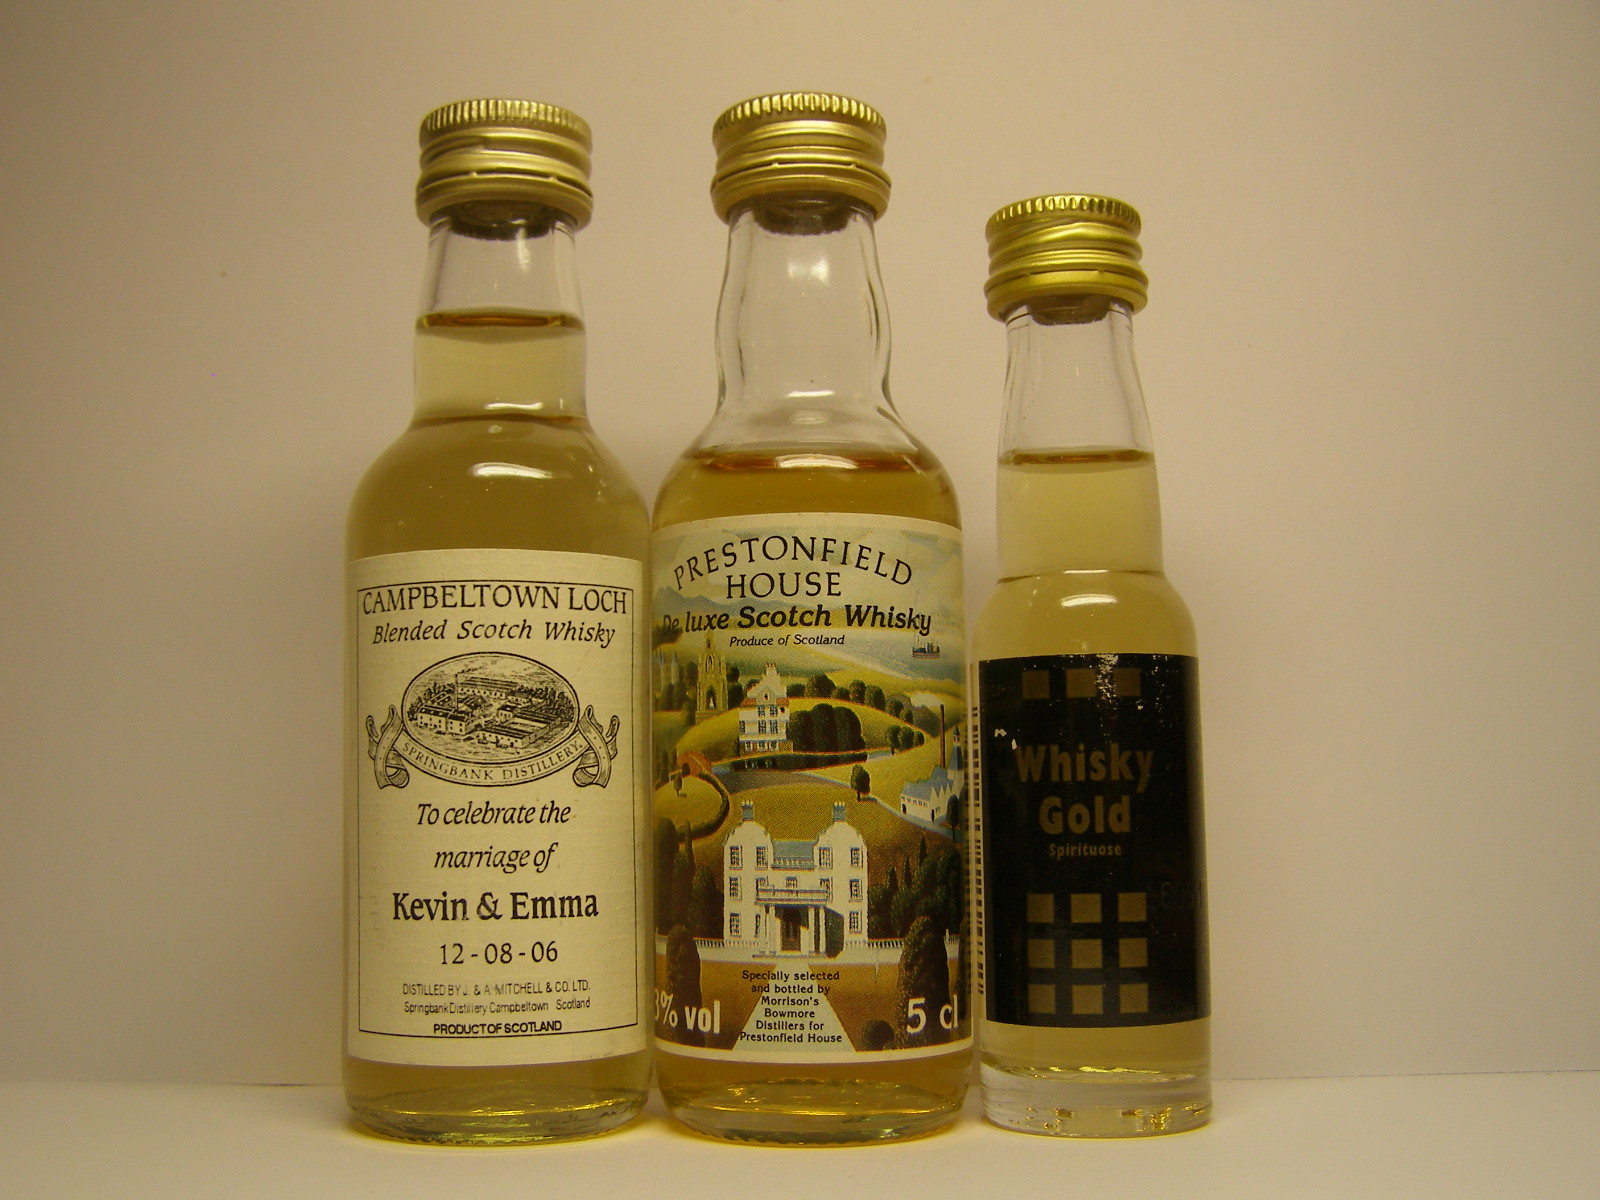 CAMBELTOWN LOCH , PRESTONFIELD HOUSE , WHISKY GOLD